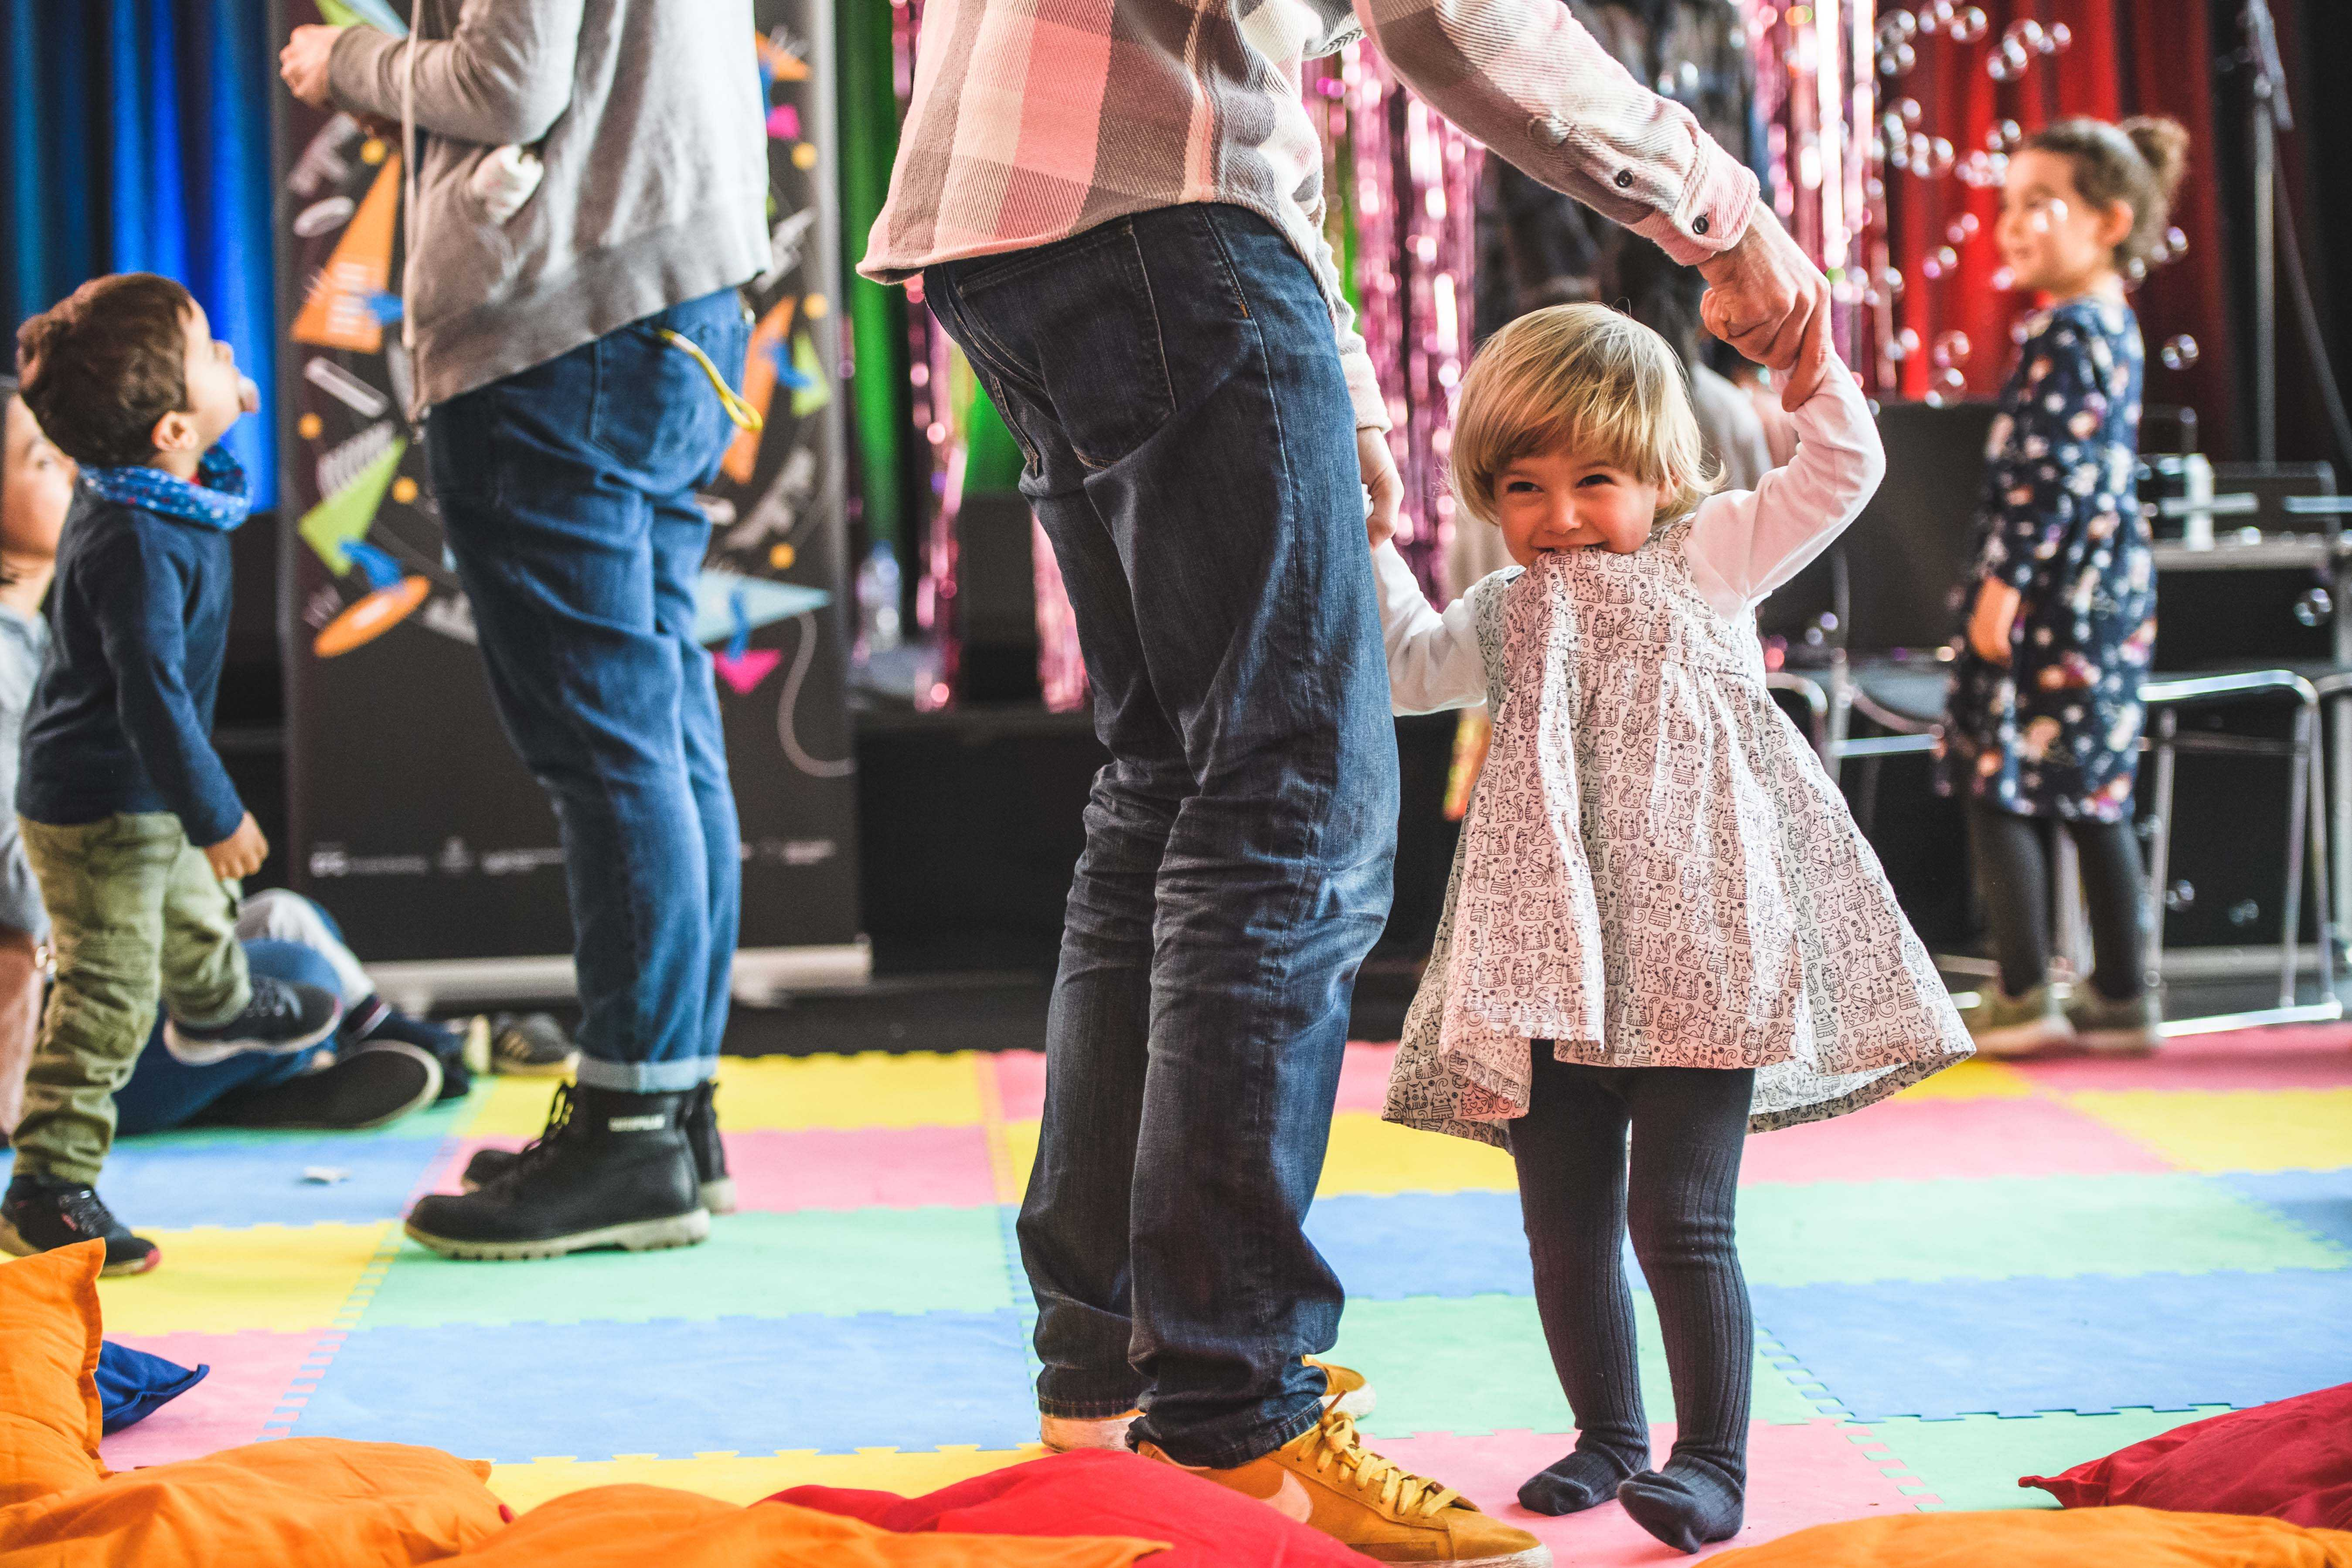 Children dancing on a bright coloured floor